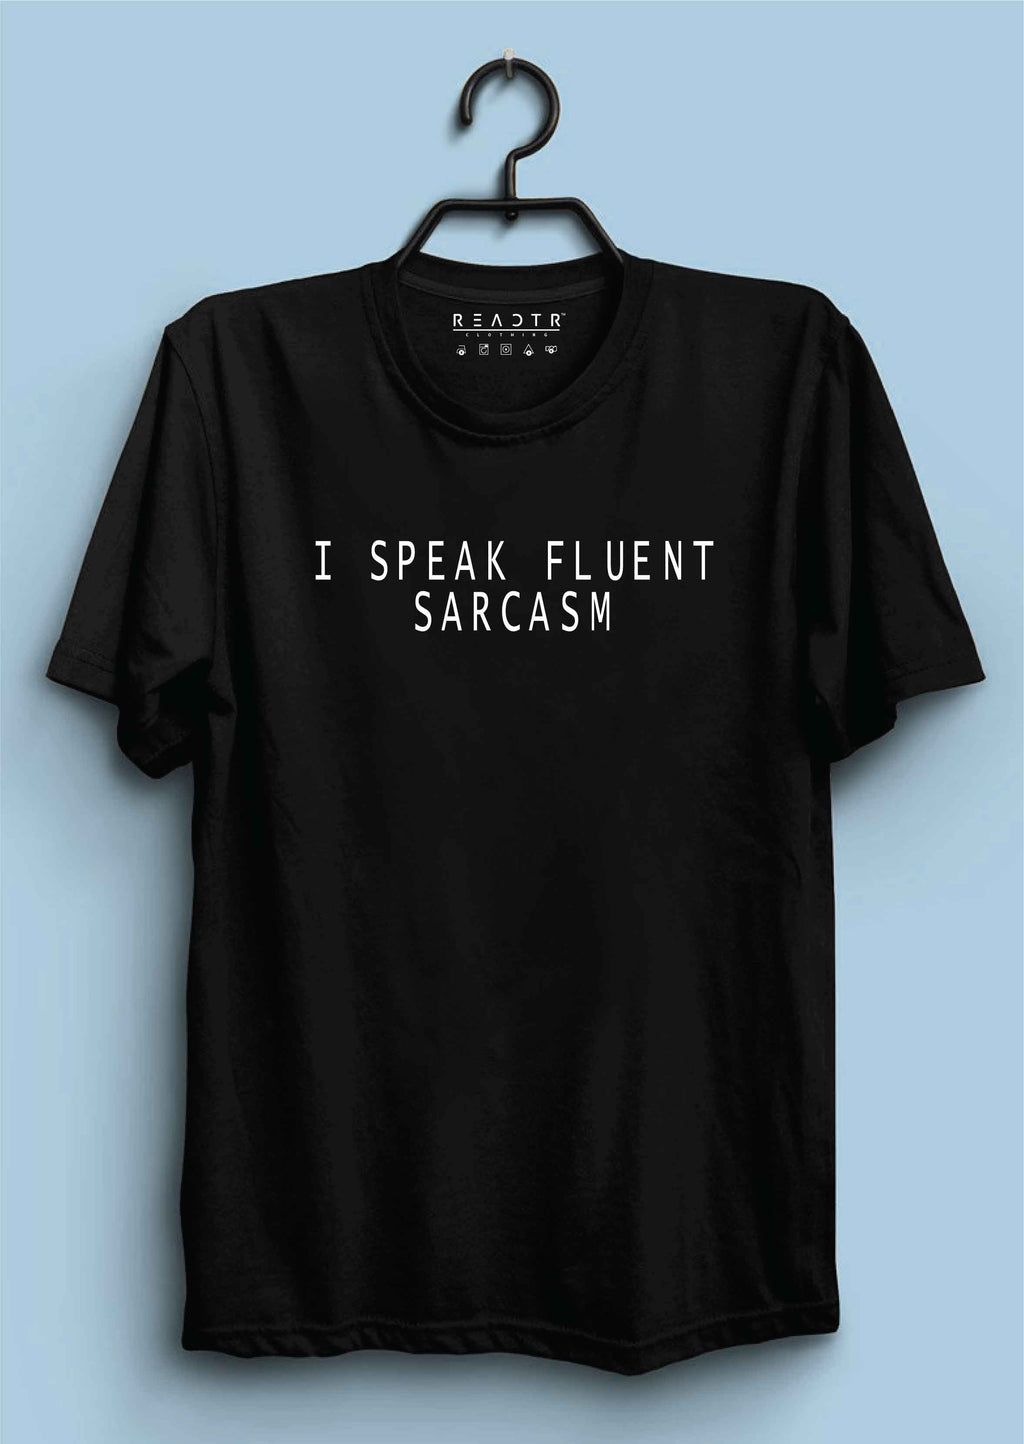 I Speak Fluent Sarcasm Reactr Tshirts For Men - Eyewearlabs